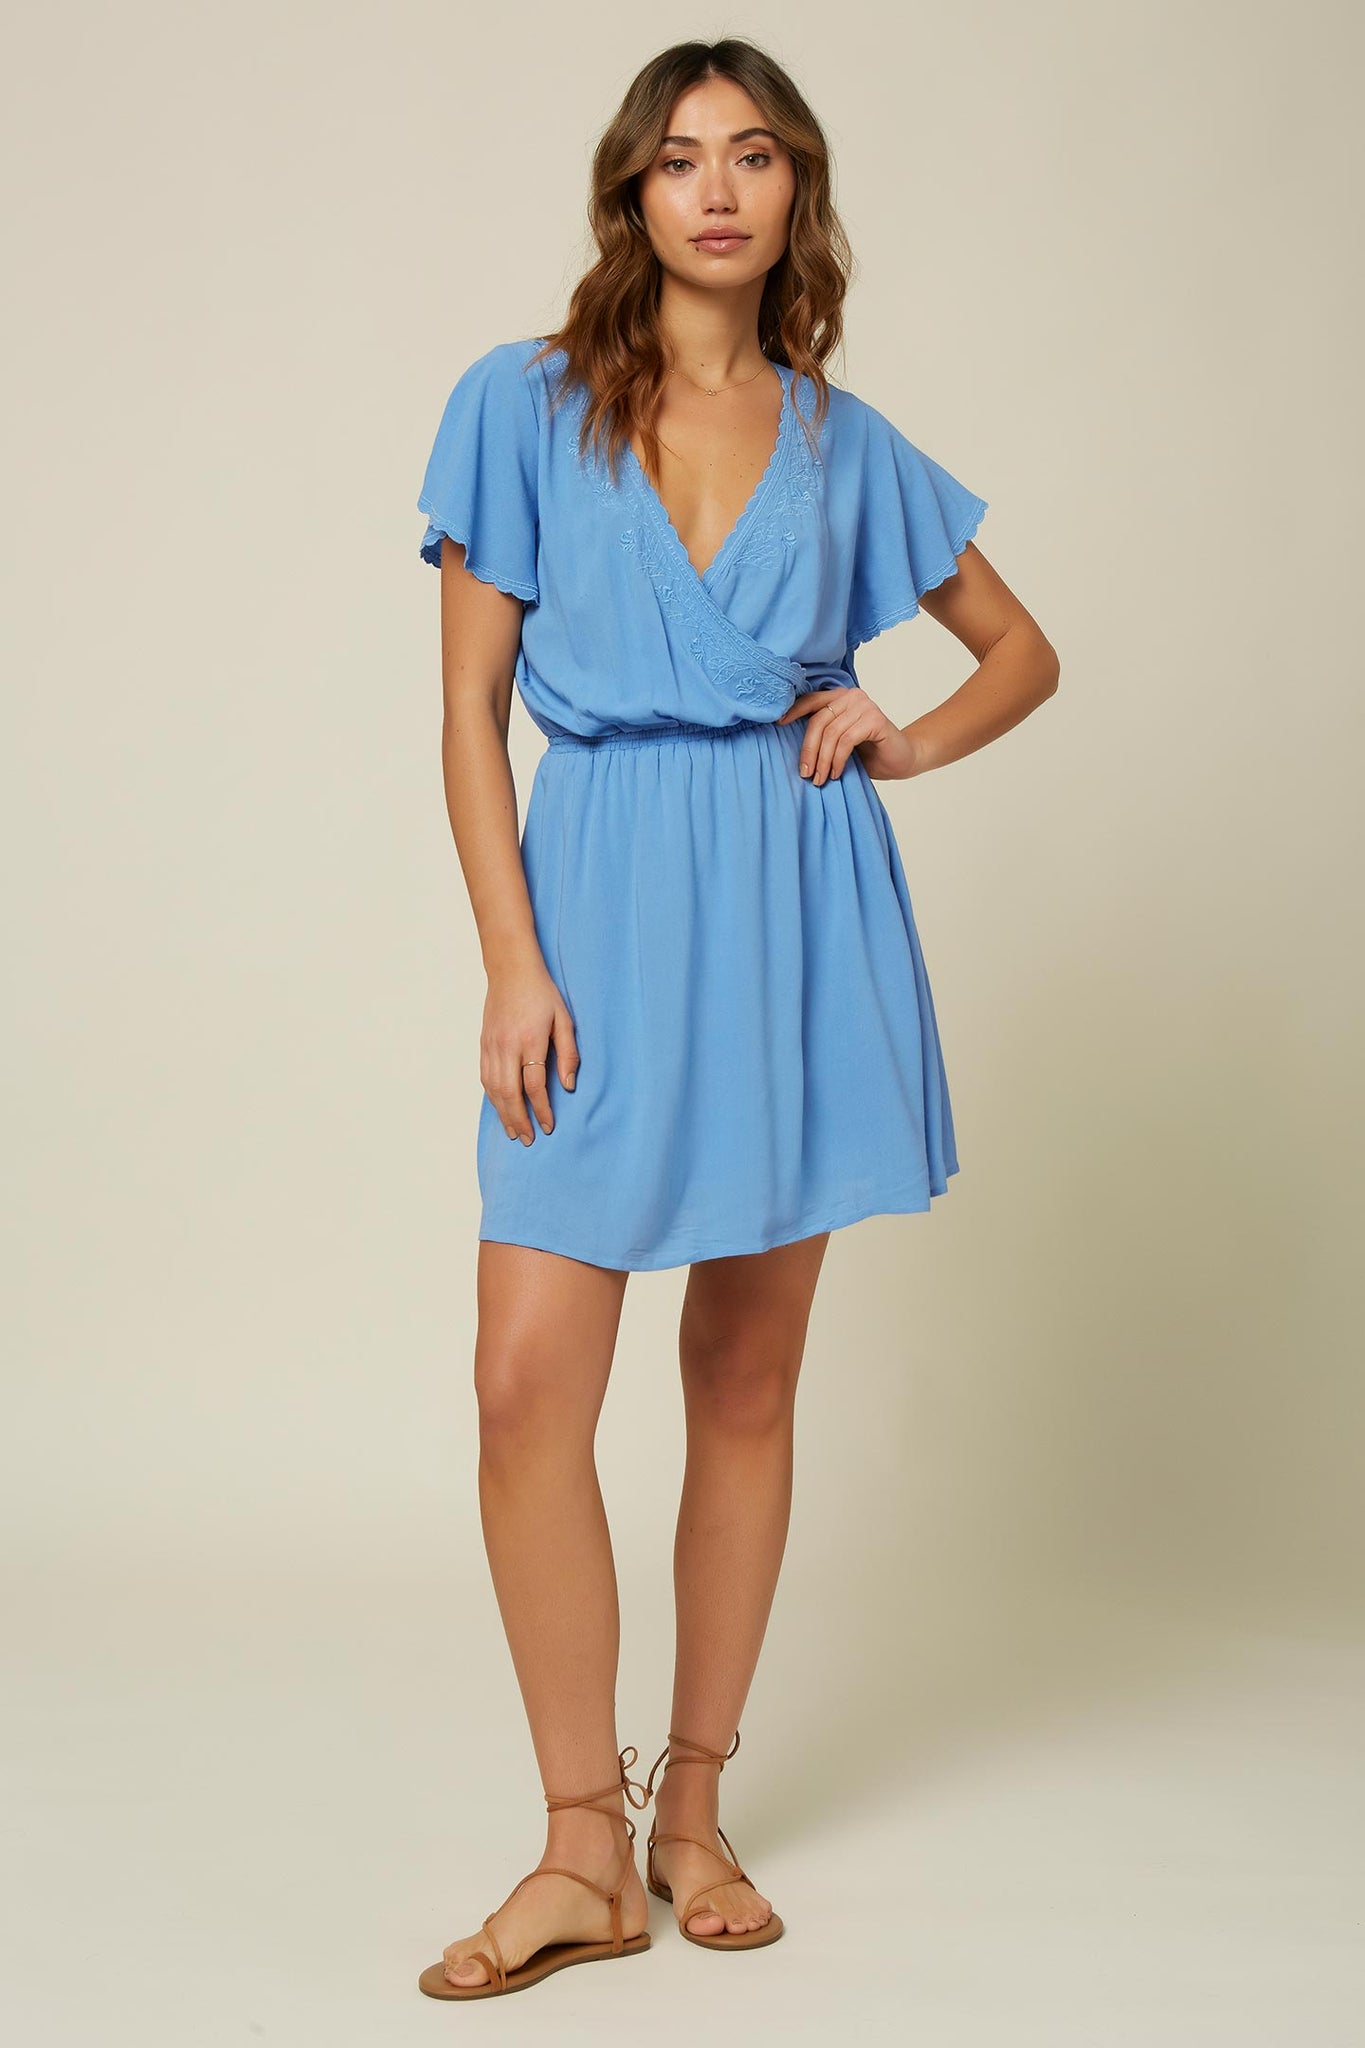 Nolita Dress - Silver Lake Blue | O'Neill